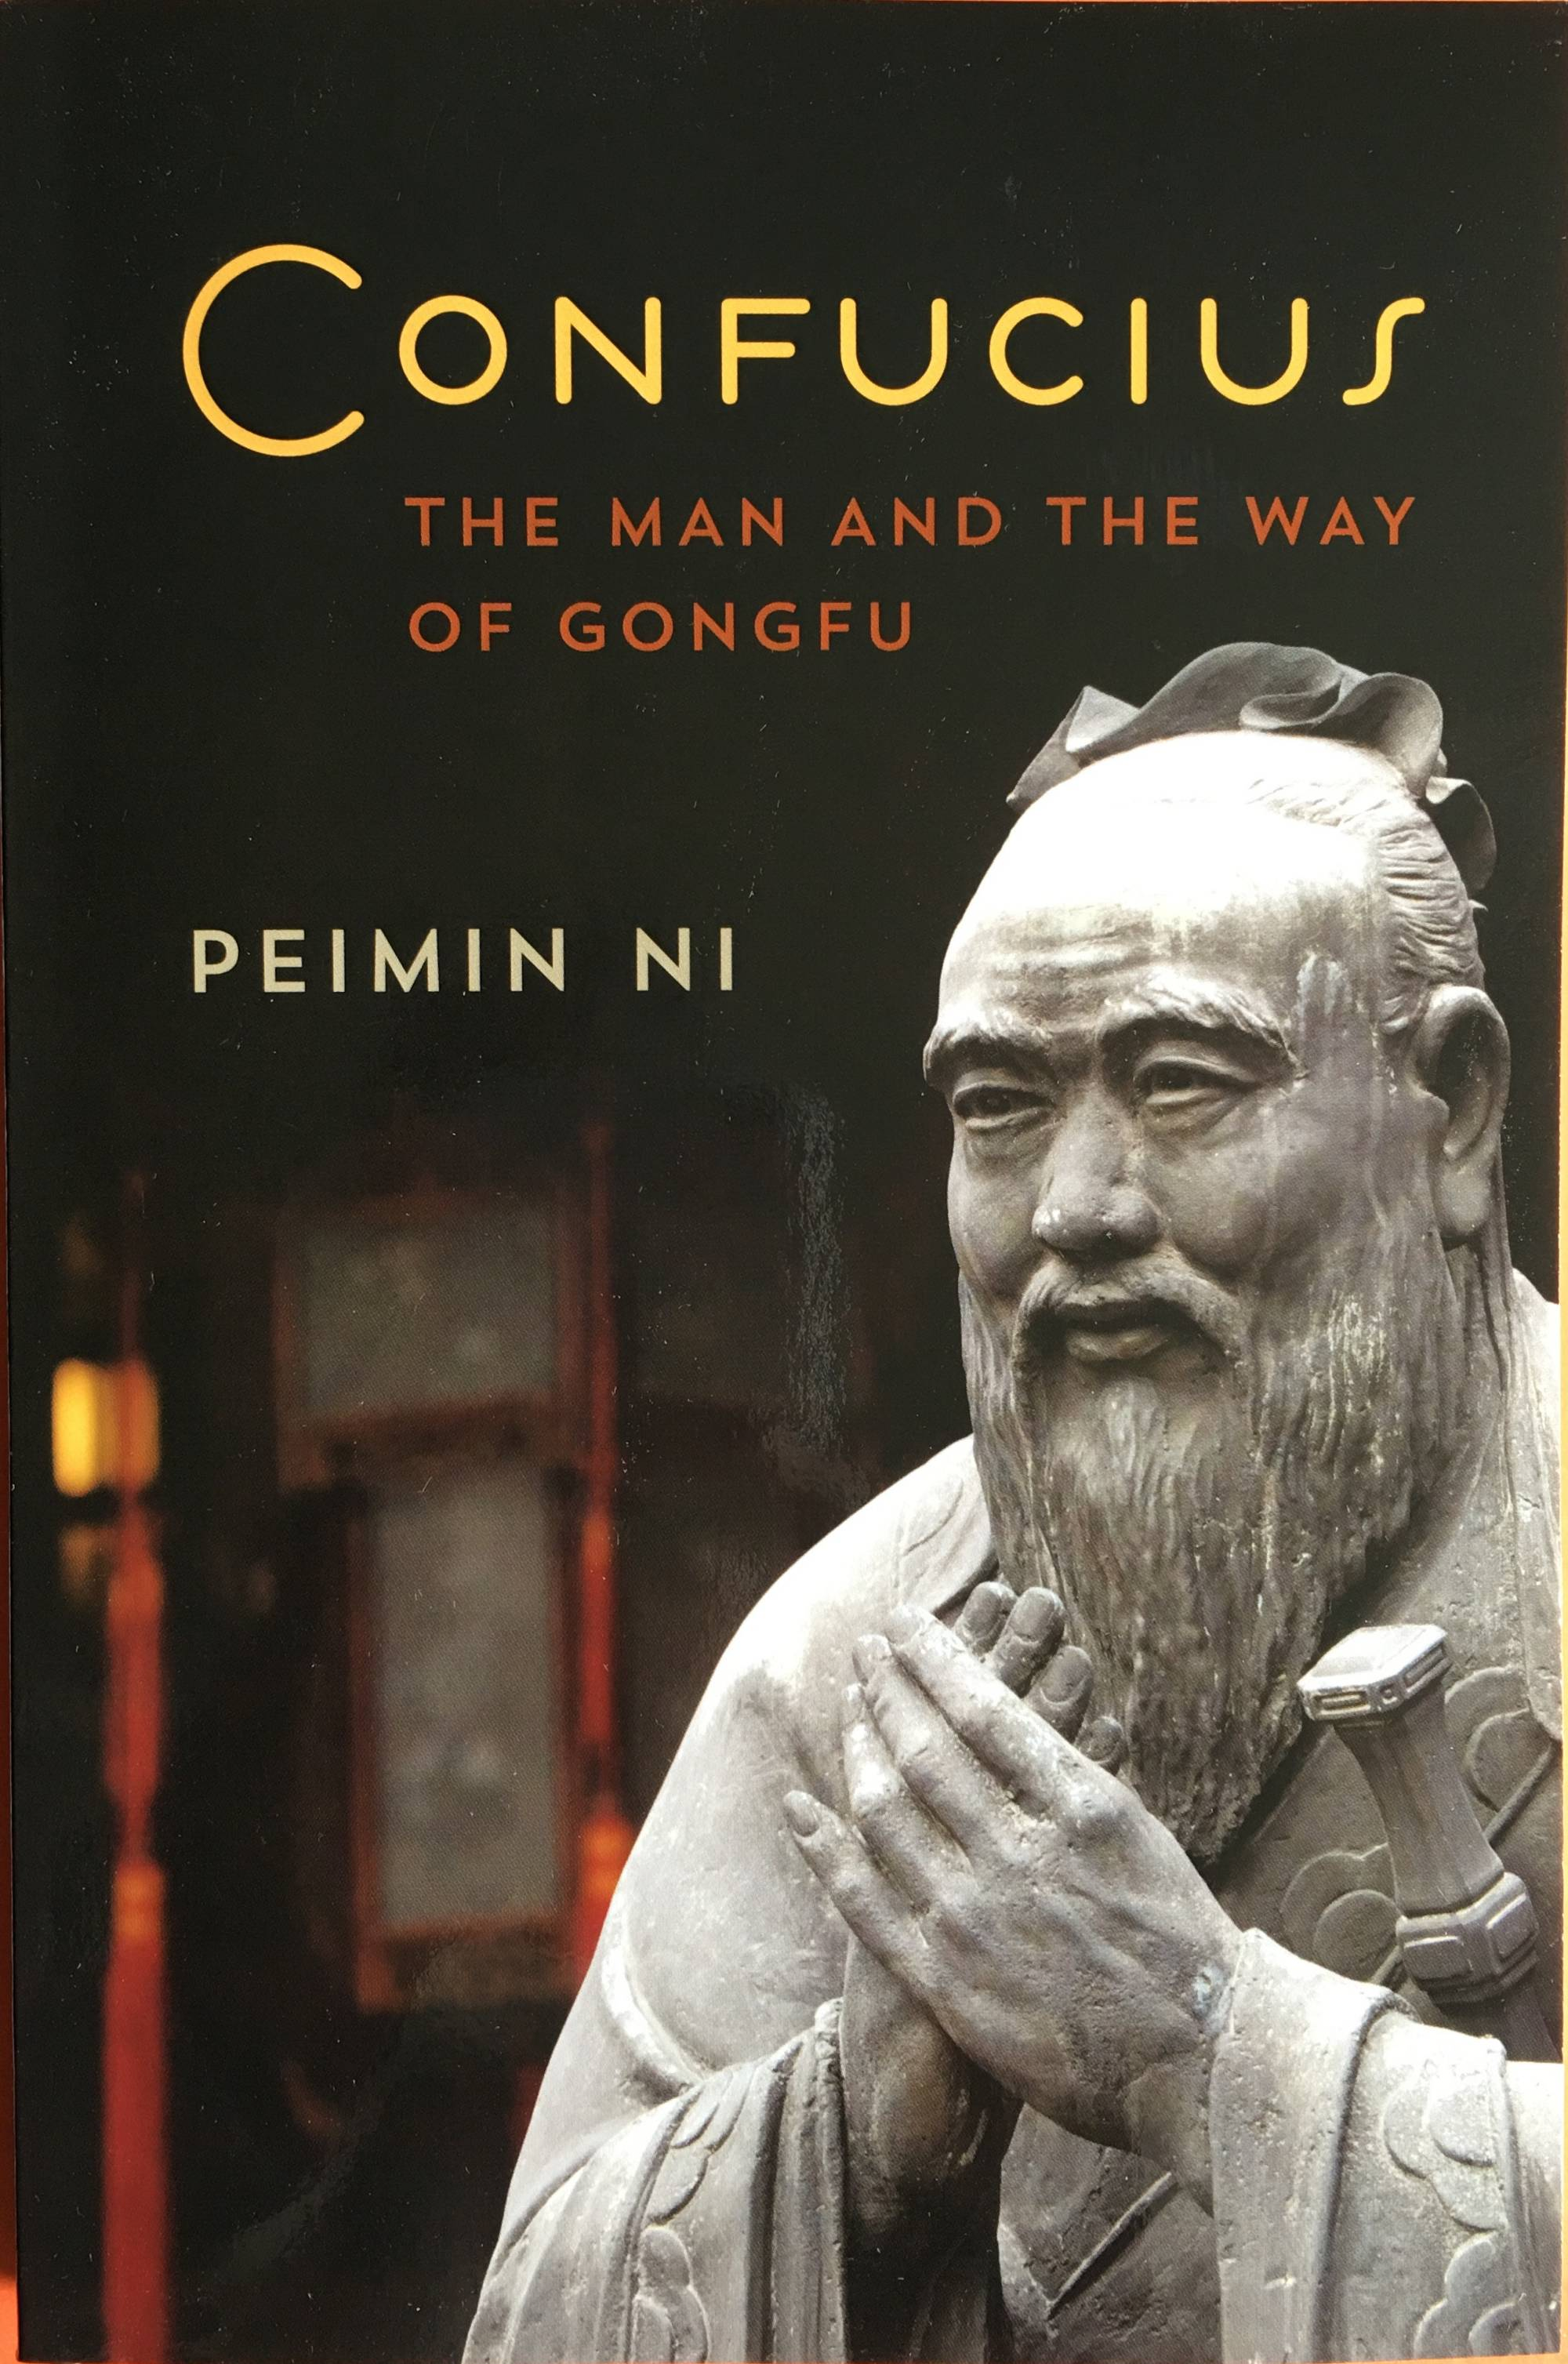 Confucius the man and the way of Gongfu by Peimin Ni